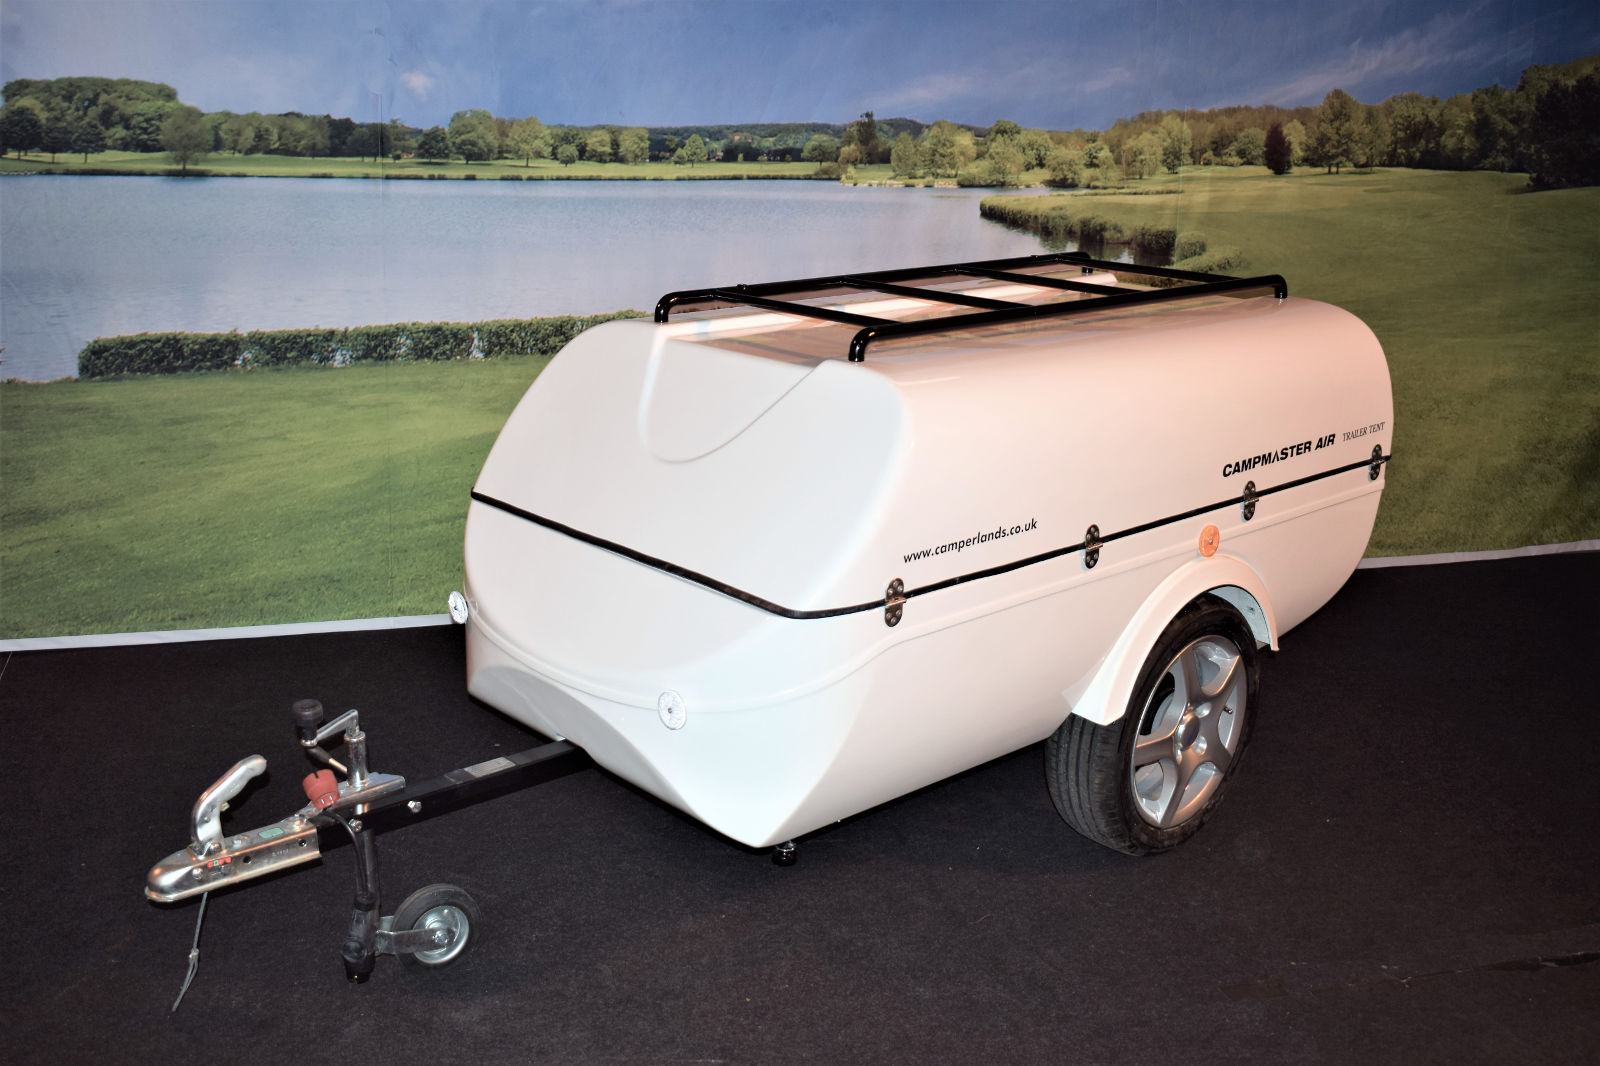 Campmaster AIR Inflatable Trailer Tent